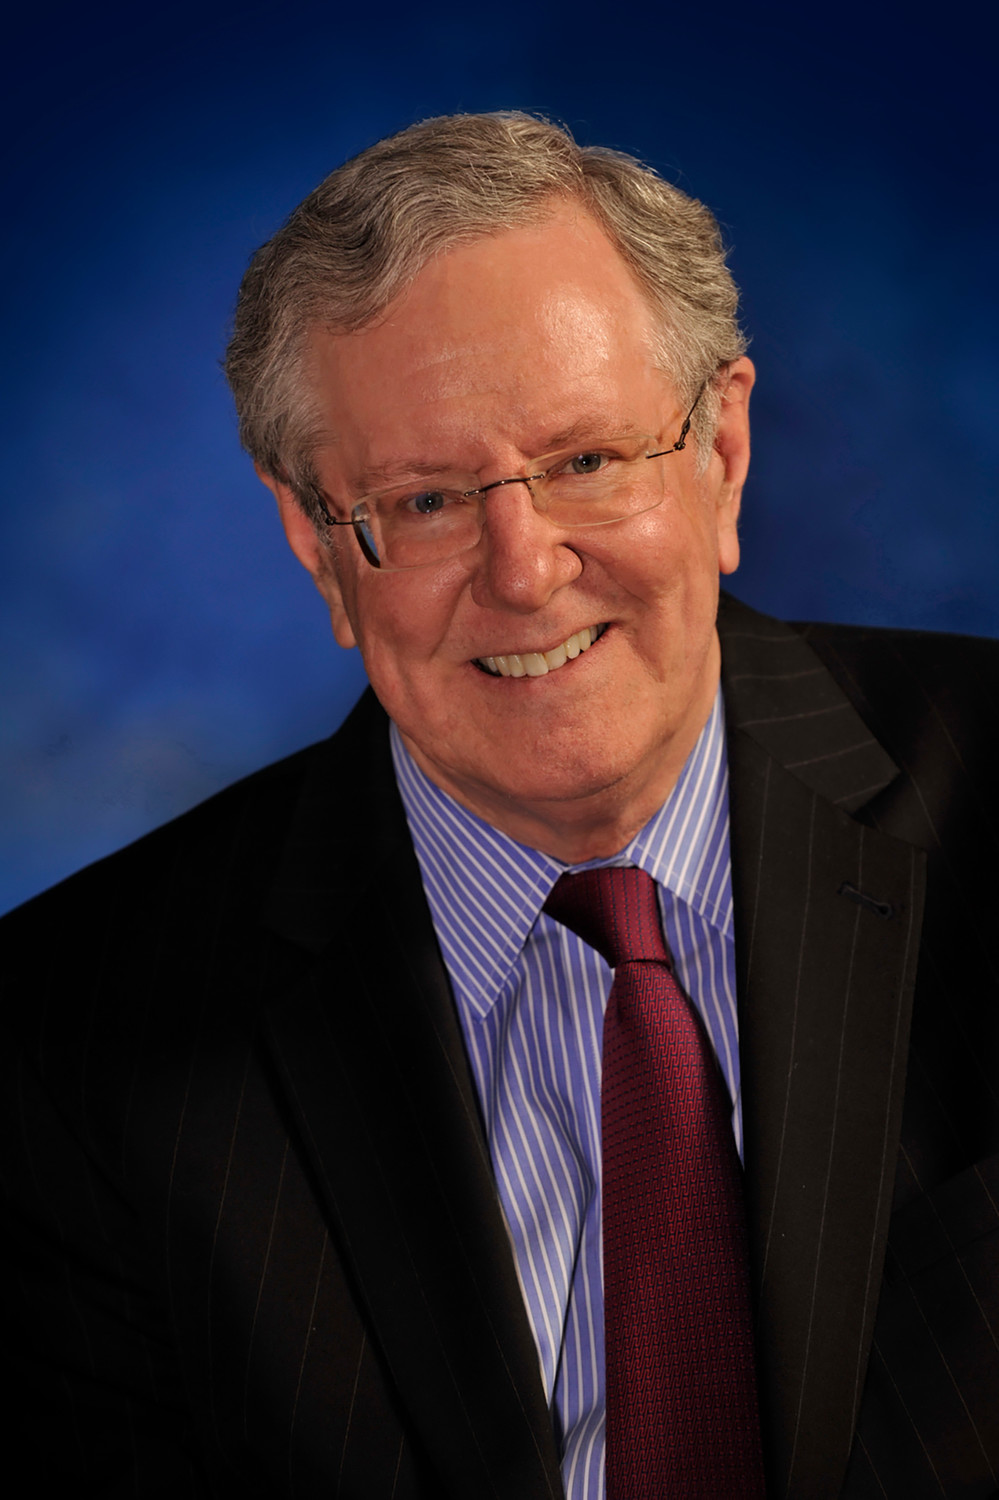 Steve Forbes is scheduled to speak at C of O on April 10.